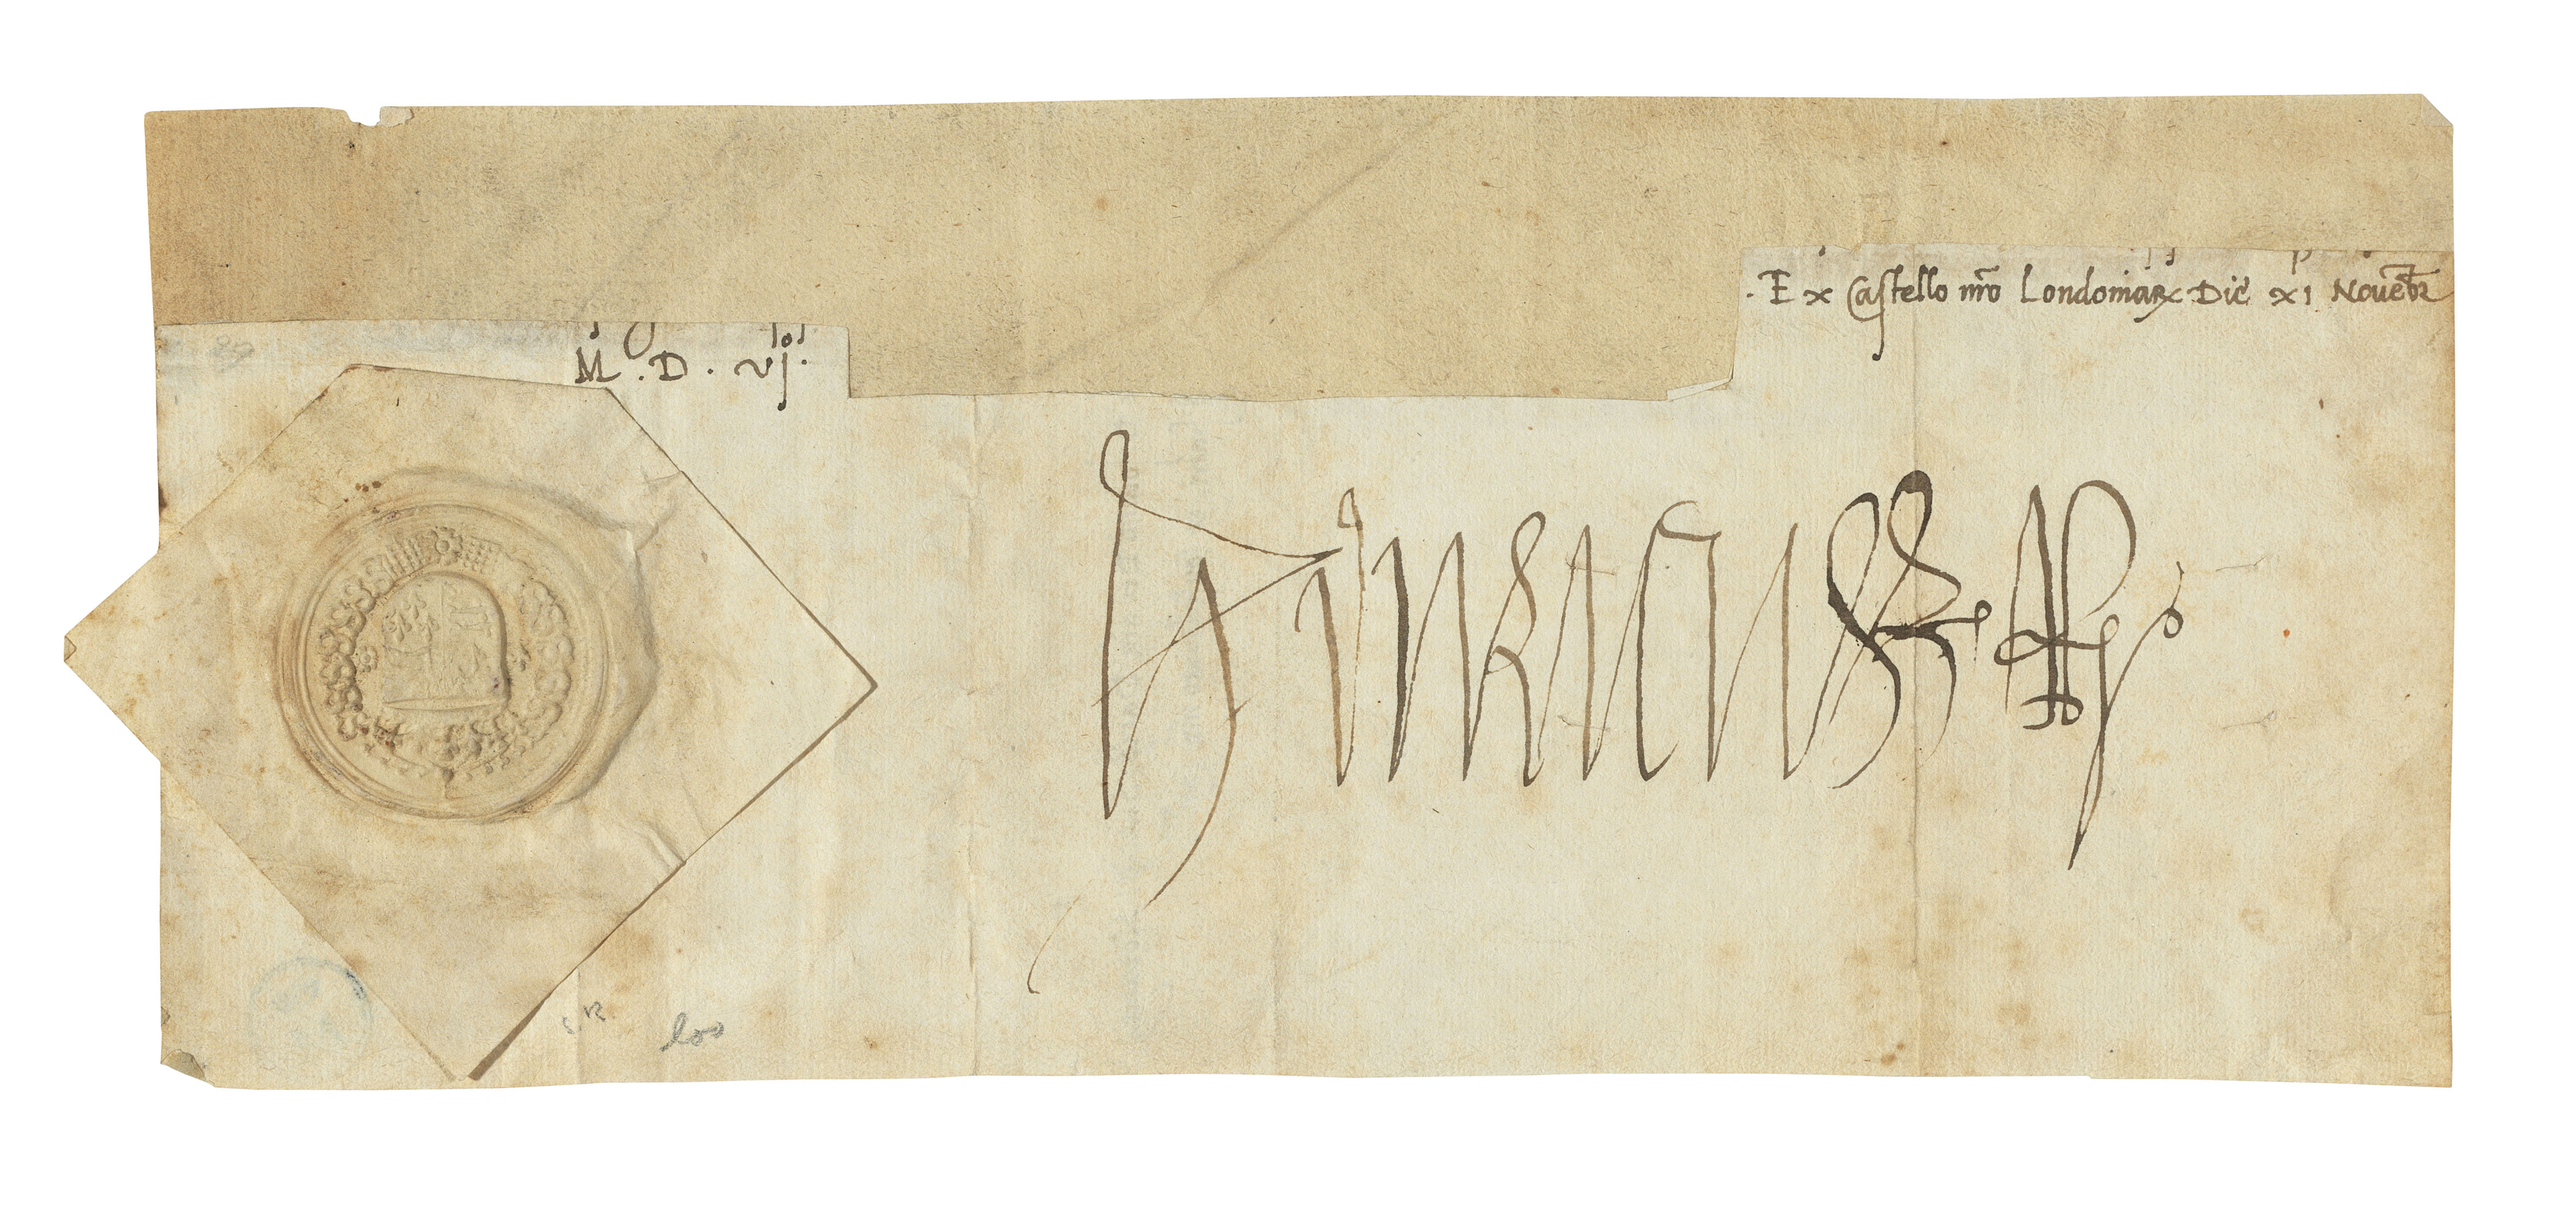 HENRY VII (1457-1509), King of England. Autograph signature ('Henricus R[ex]'), cut from a letter to King John of Denmark and Norway, Tower of London ('Ex Castello n[ost]ro Londoniarum'), 11 November 1506.